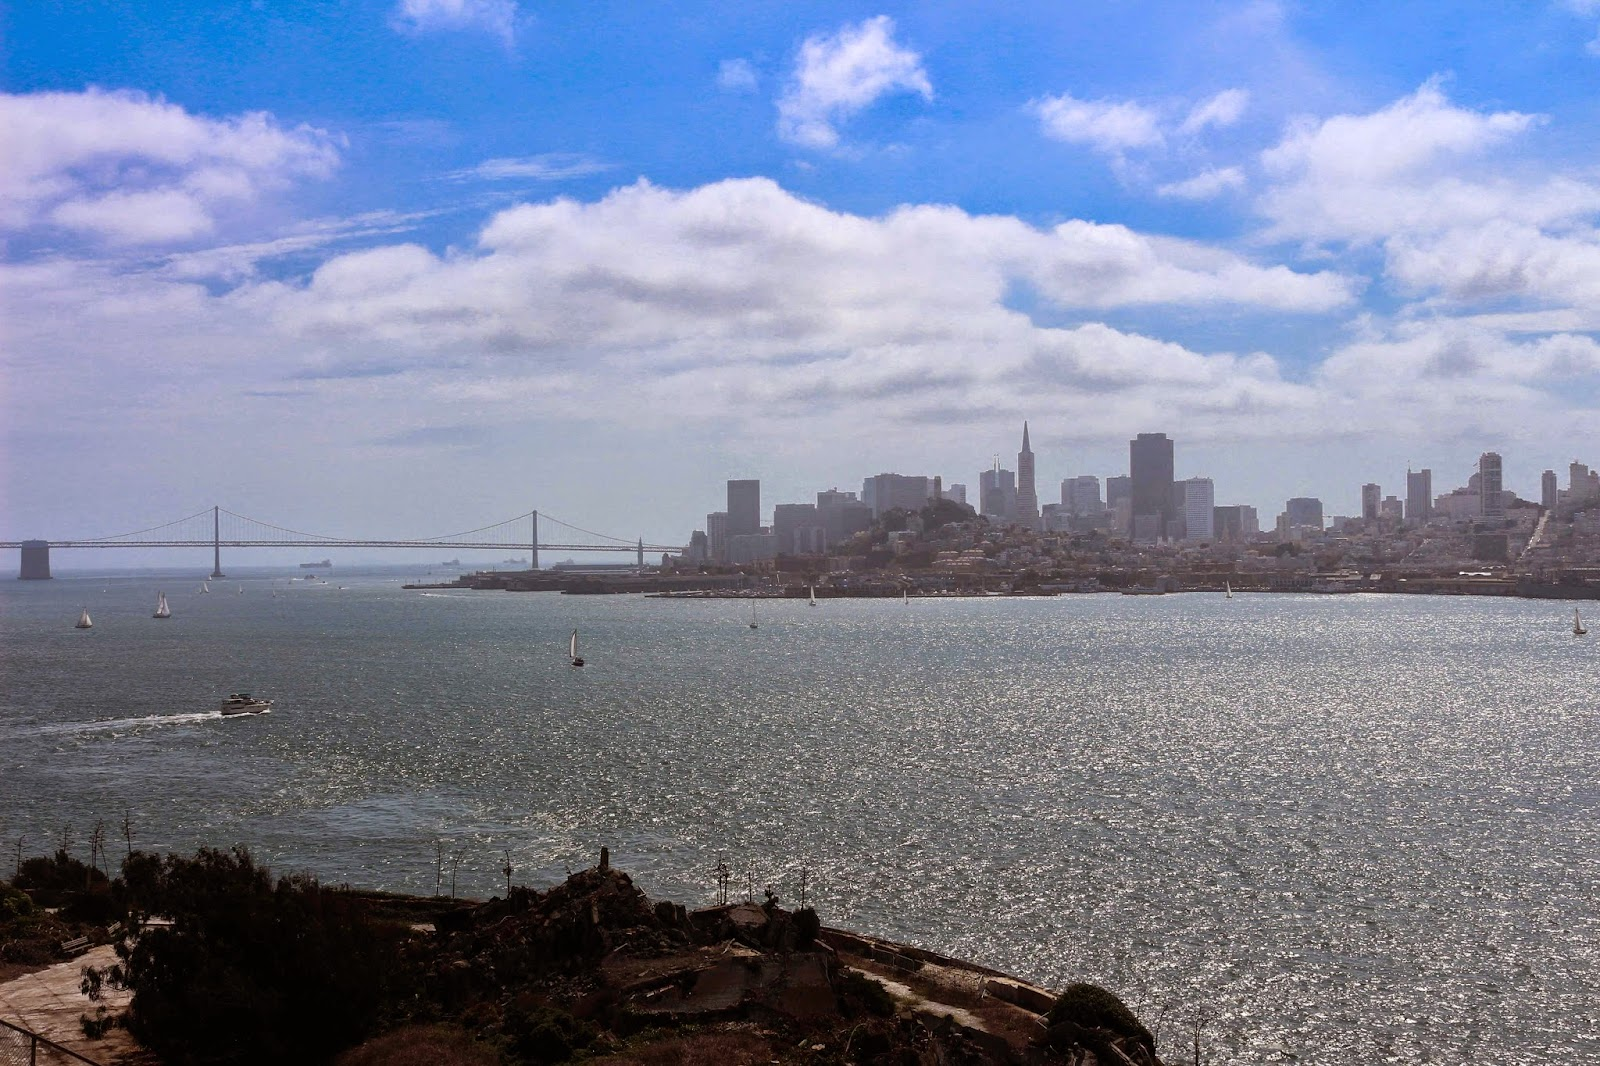 View of San Francisco from Alcatraz